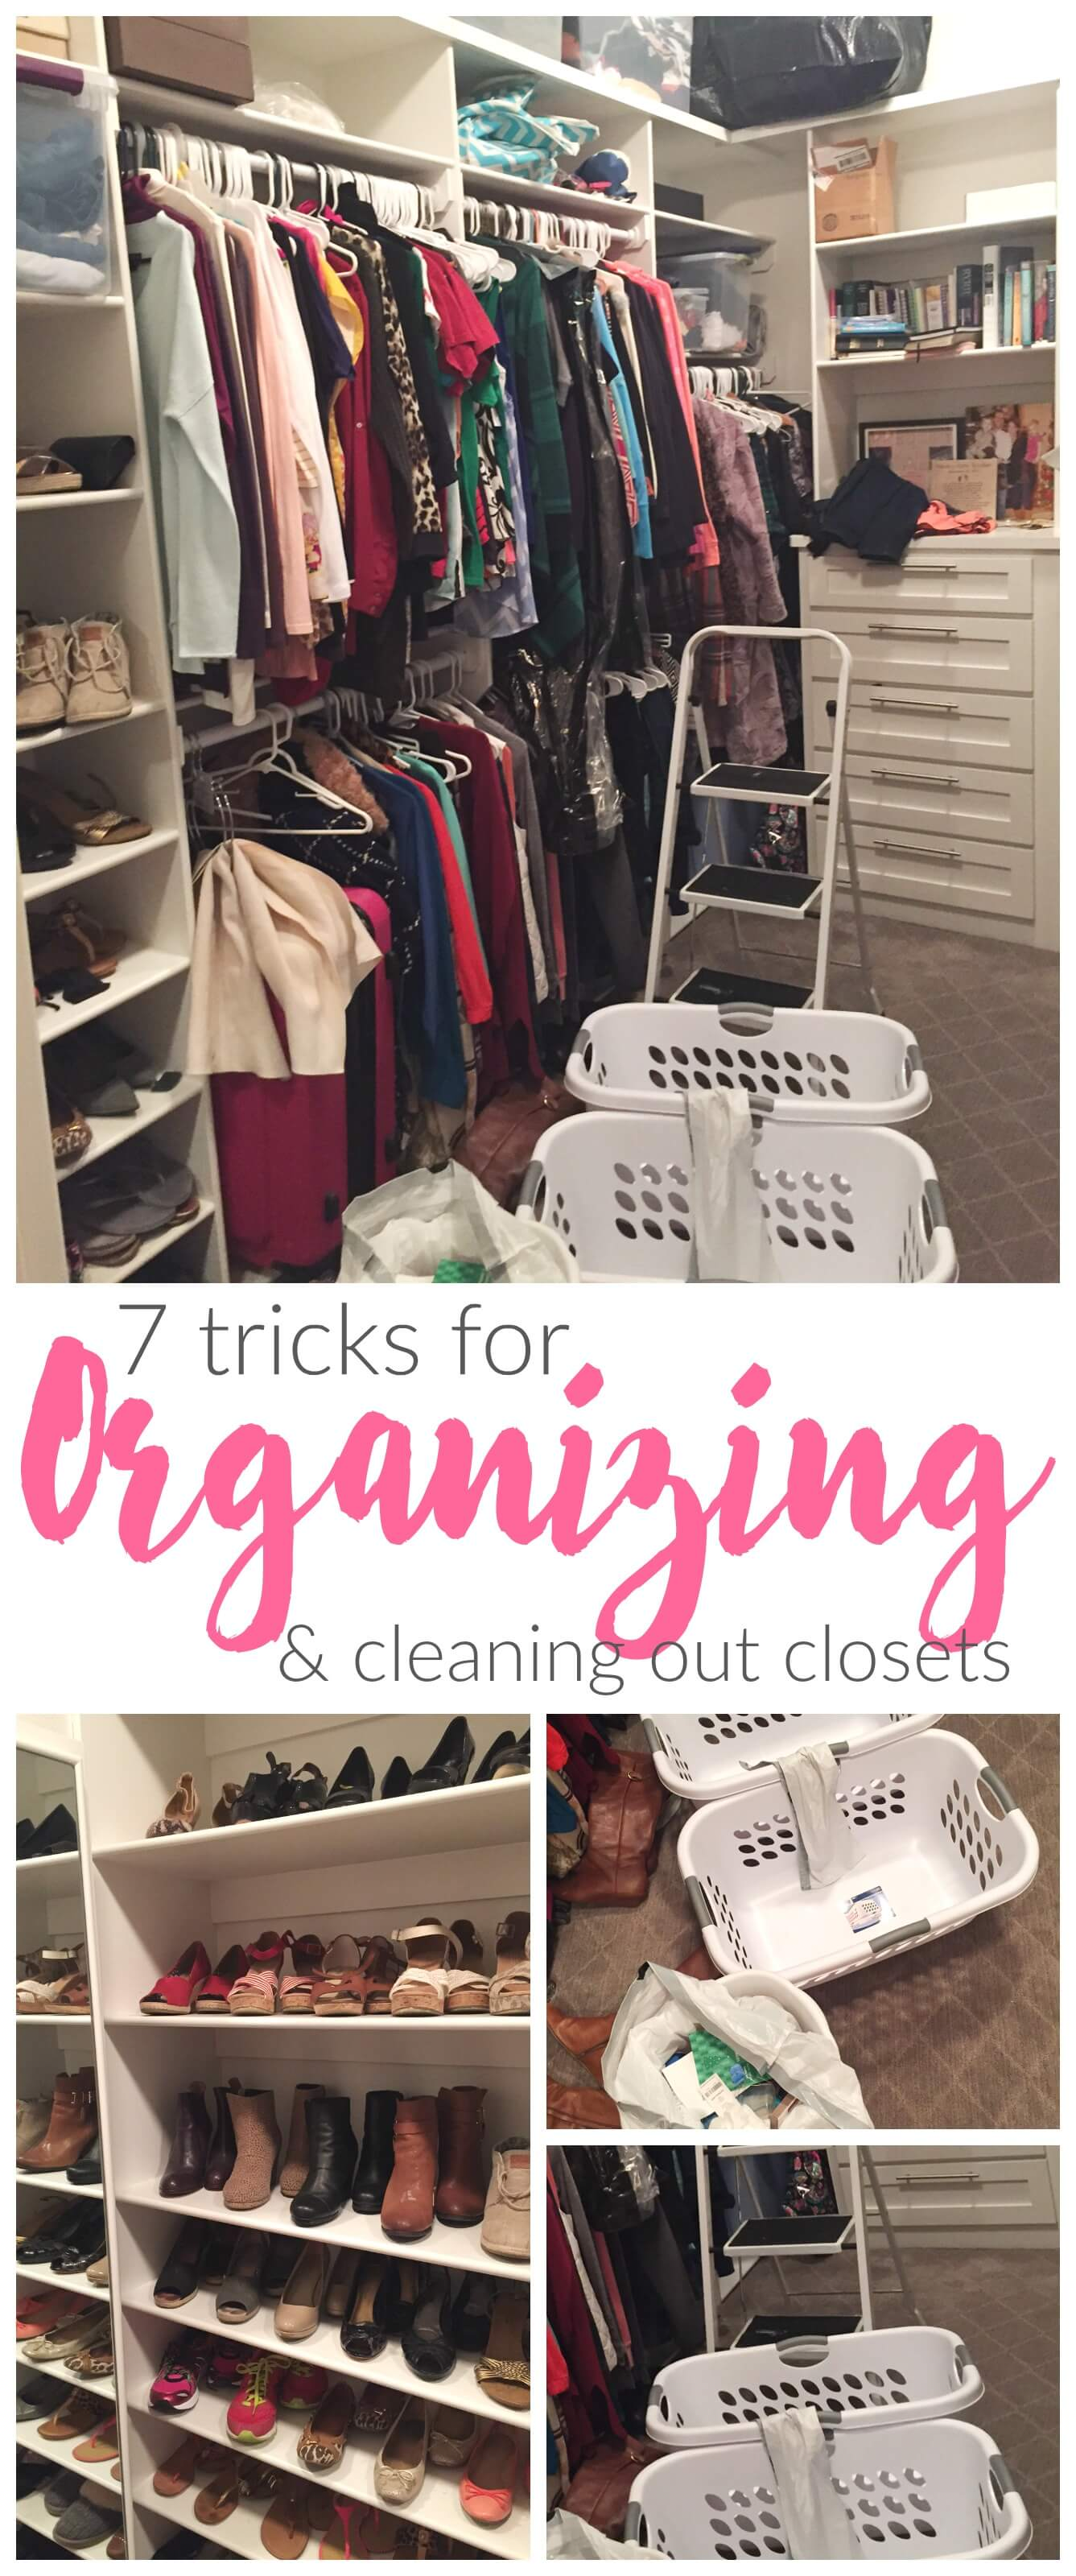 Your Closet Can Simplify Your Life The Art Of The Capsule: 7 Tricks For Organizing And Cleaning Out Your Closet